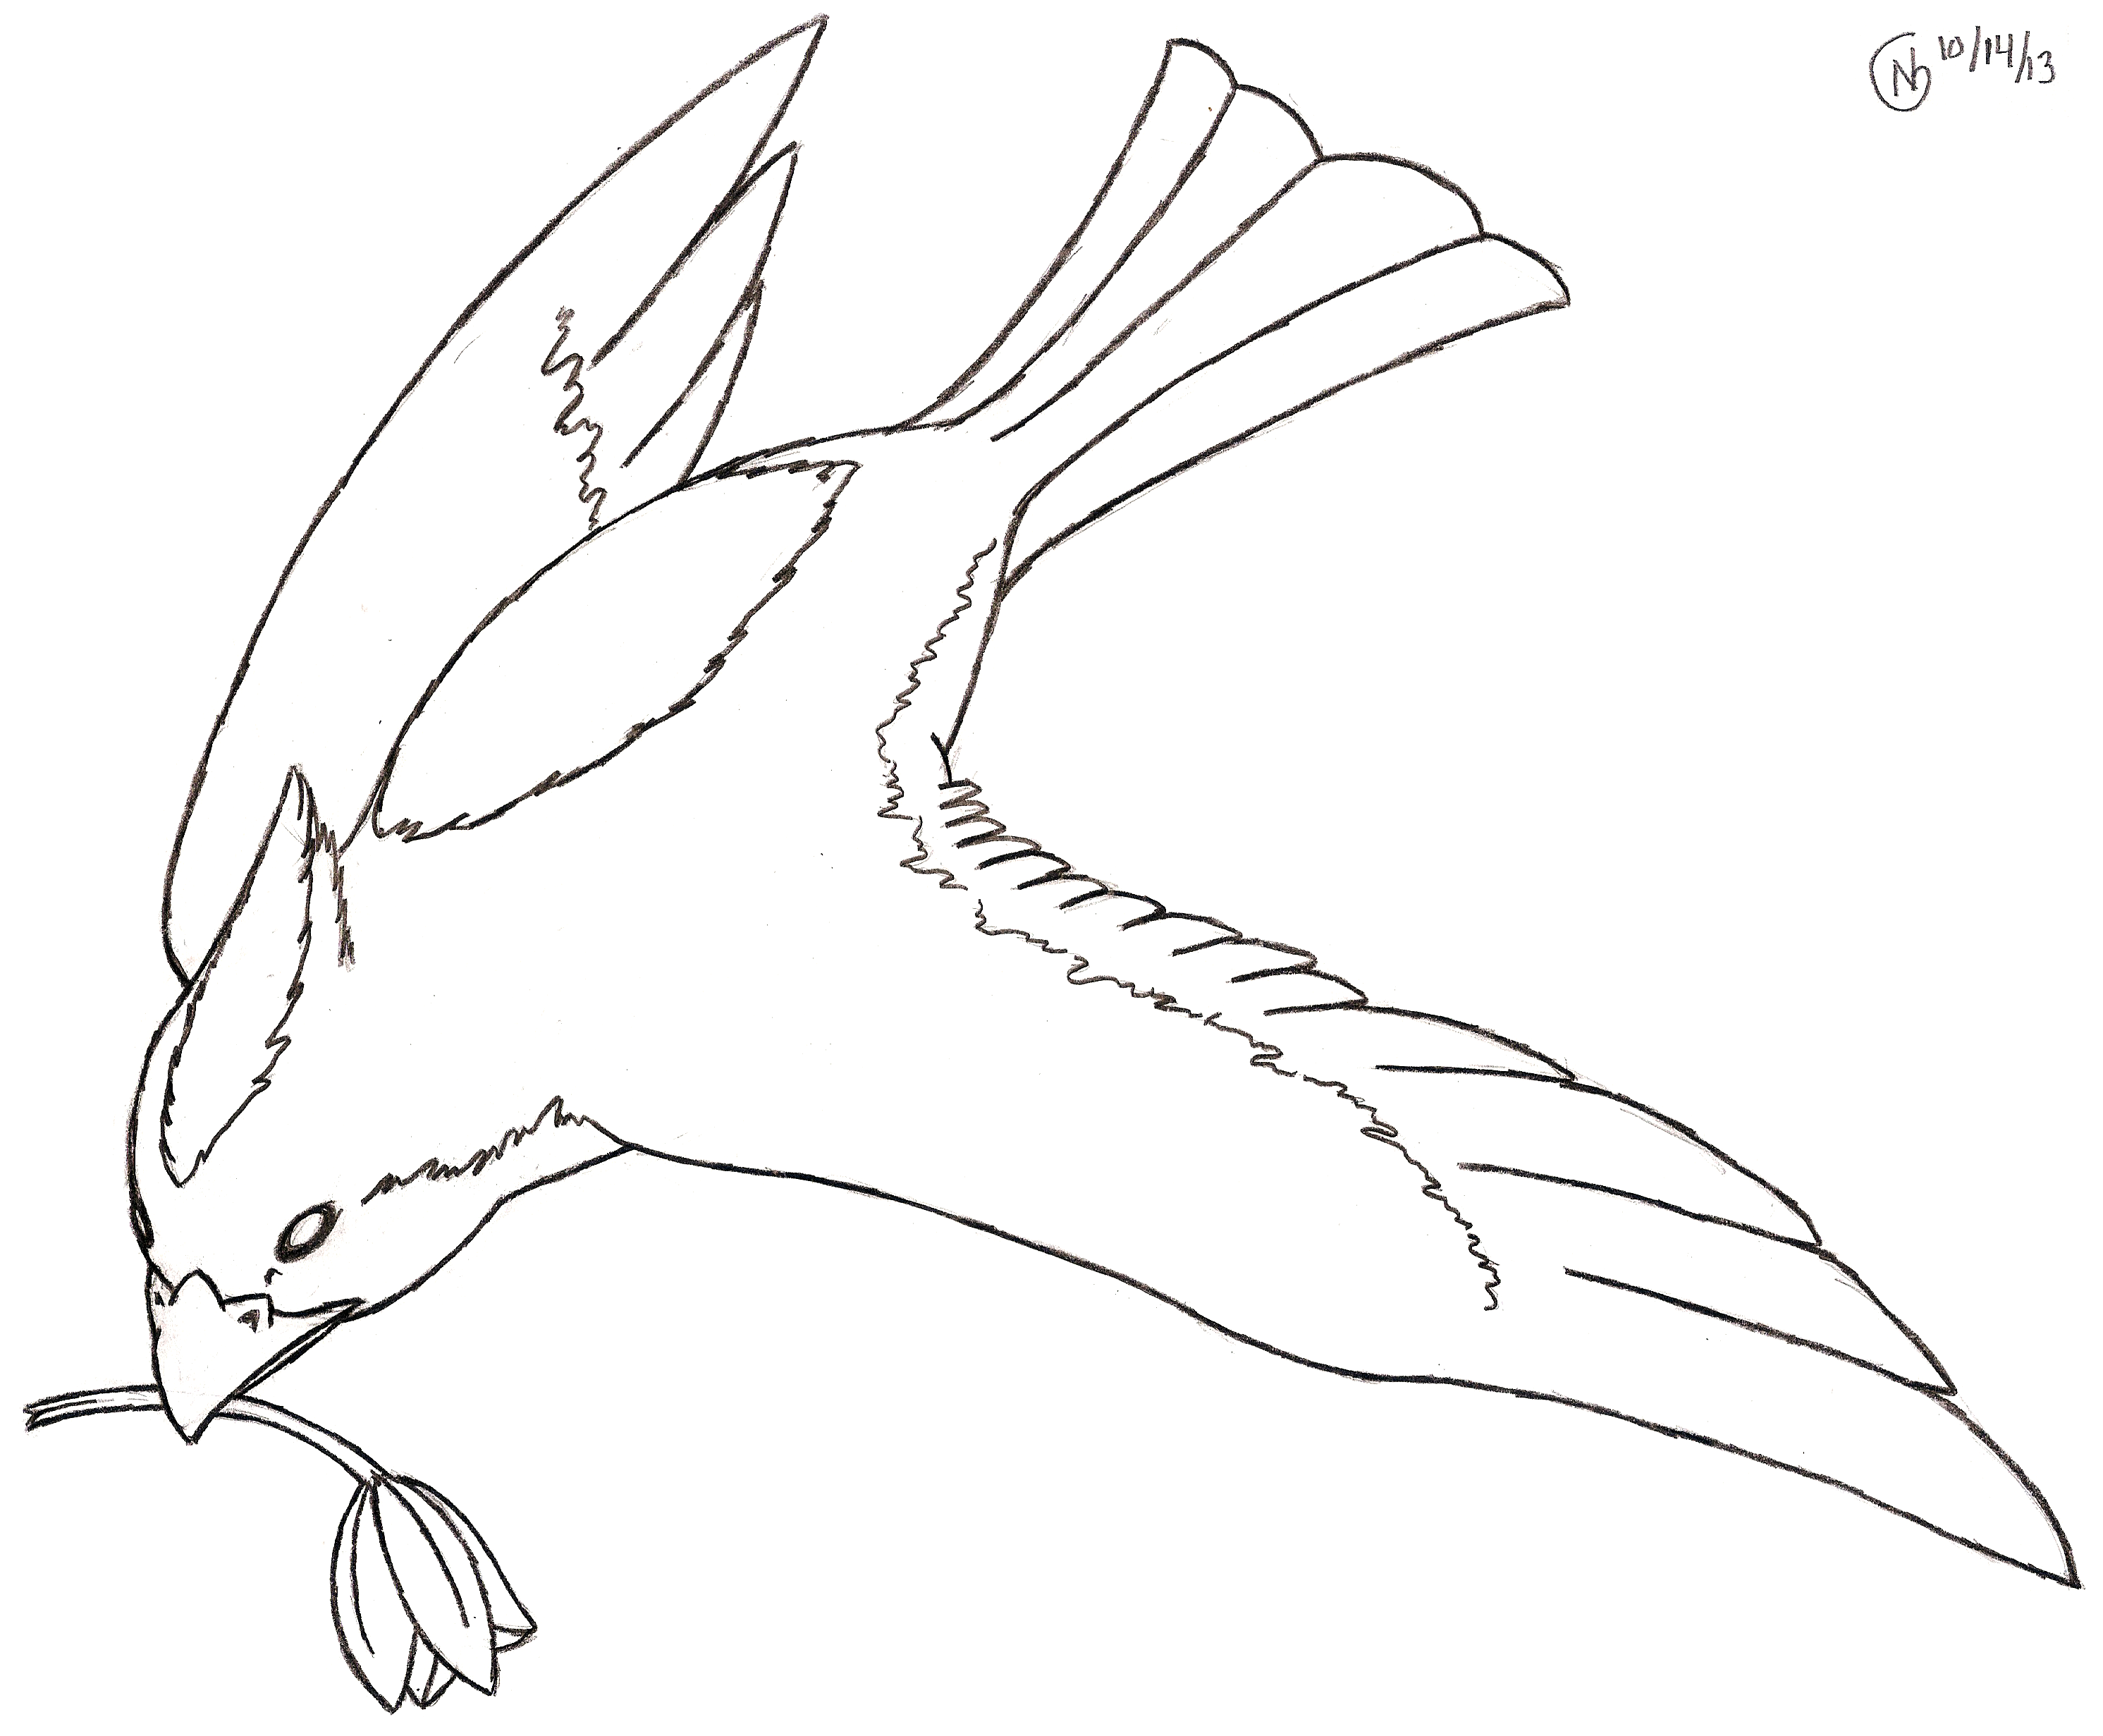 Simple Bird Line Art : Line drawings of birds in flight clipart best